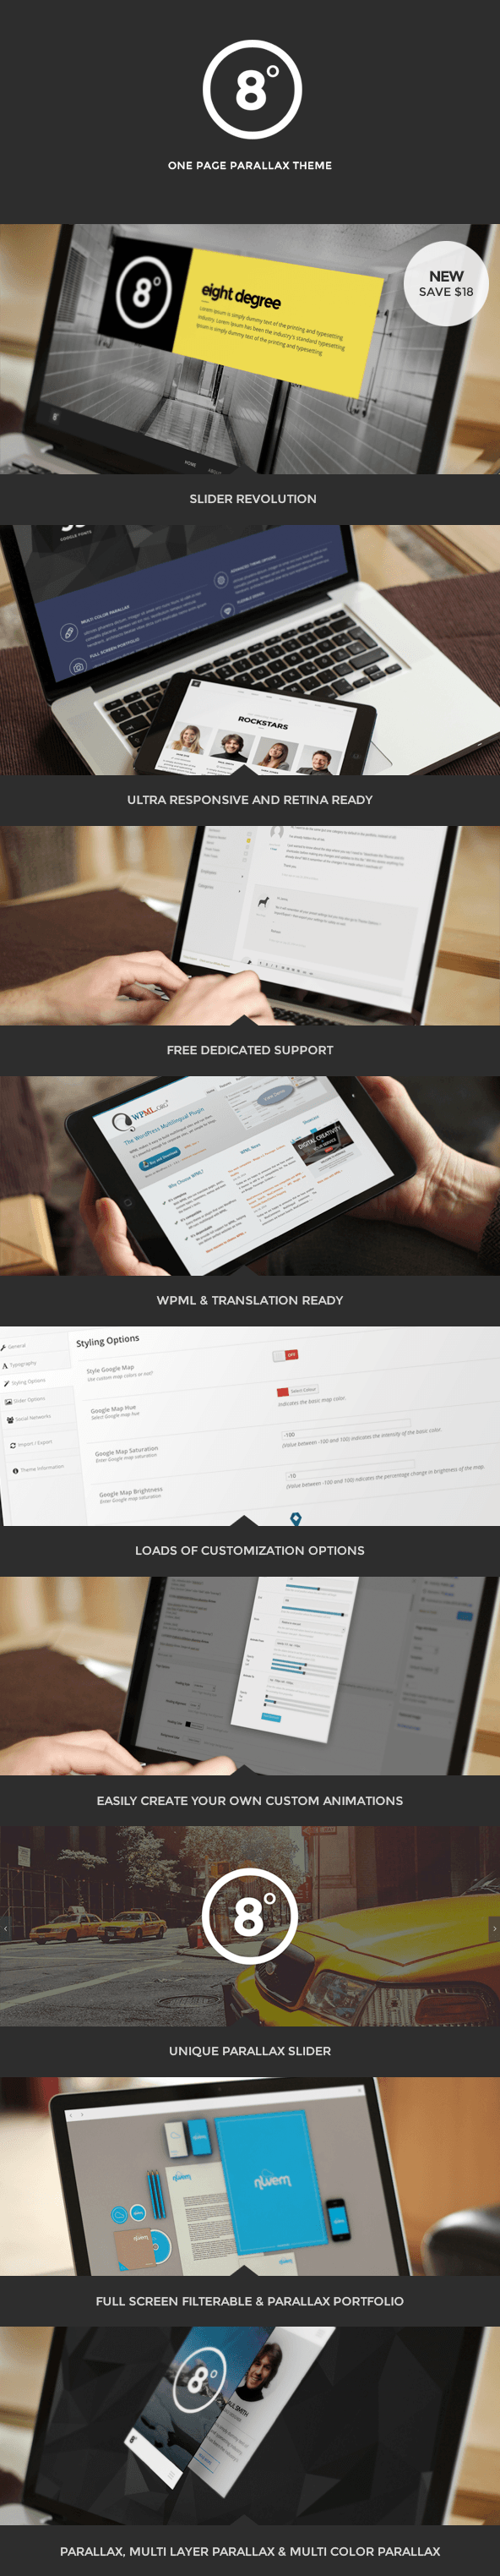 Eight Degree - One Page Parallax Theme Download